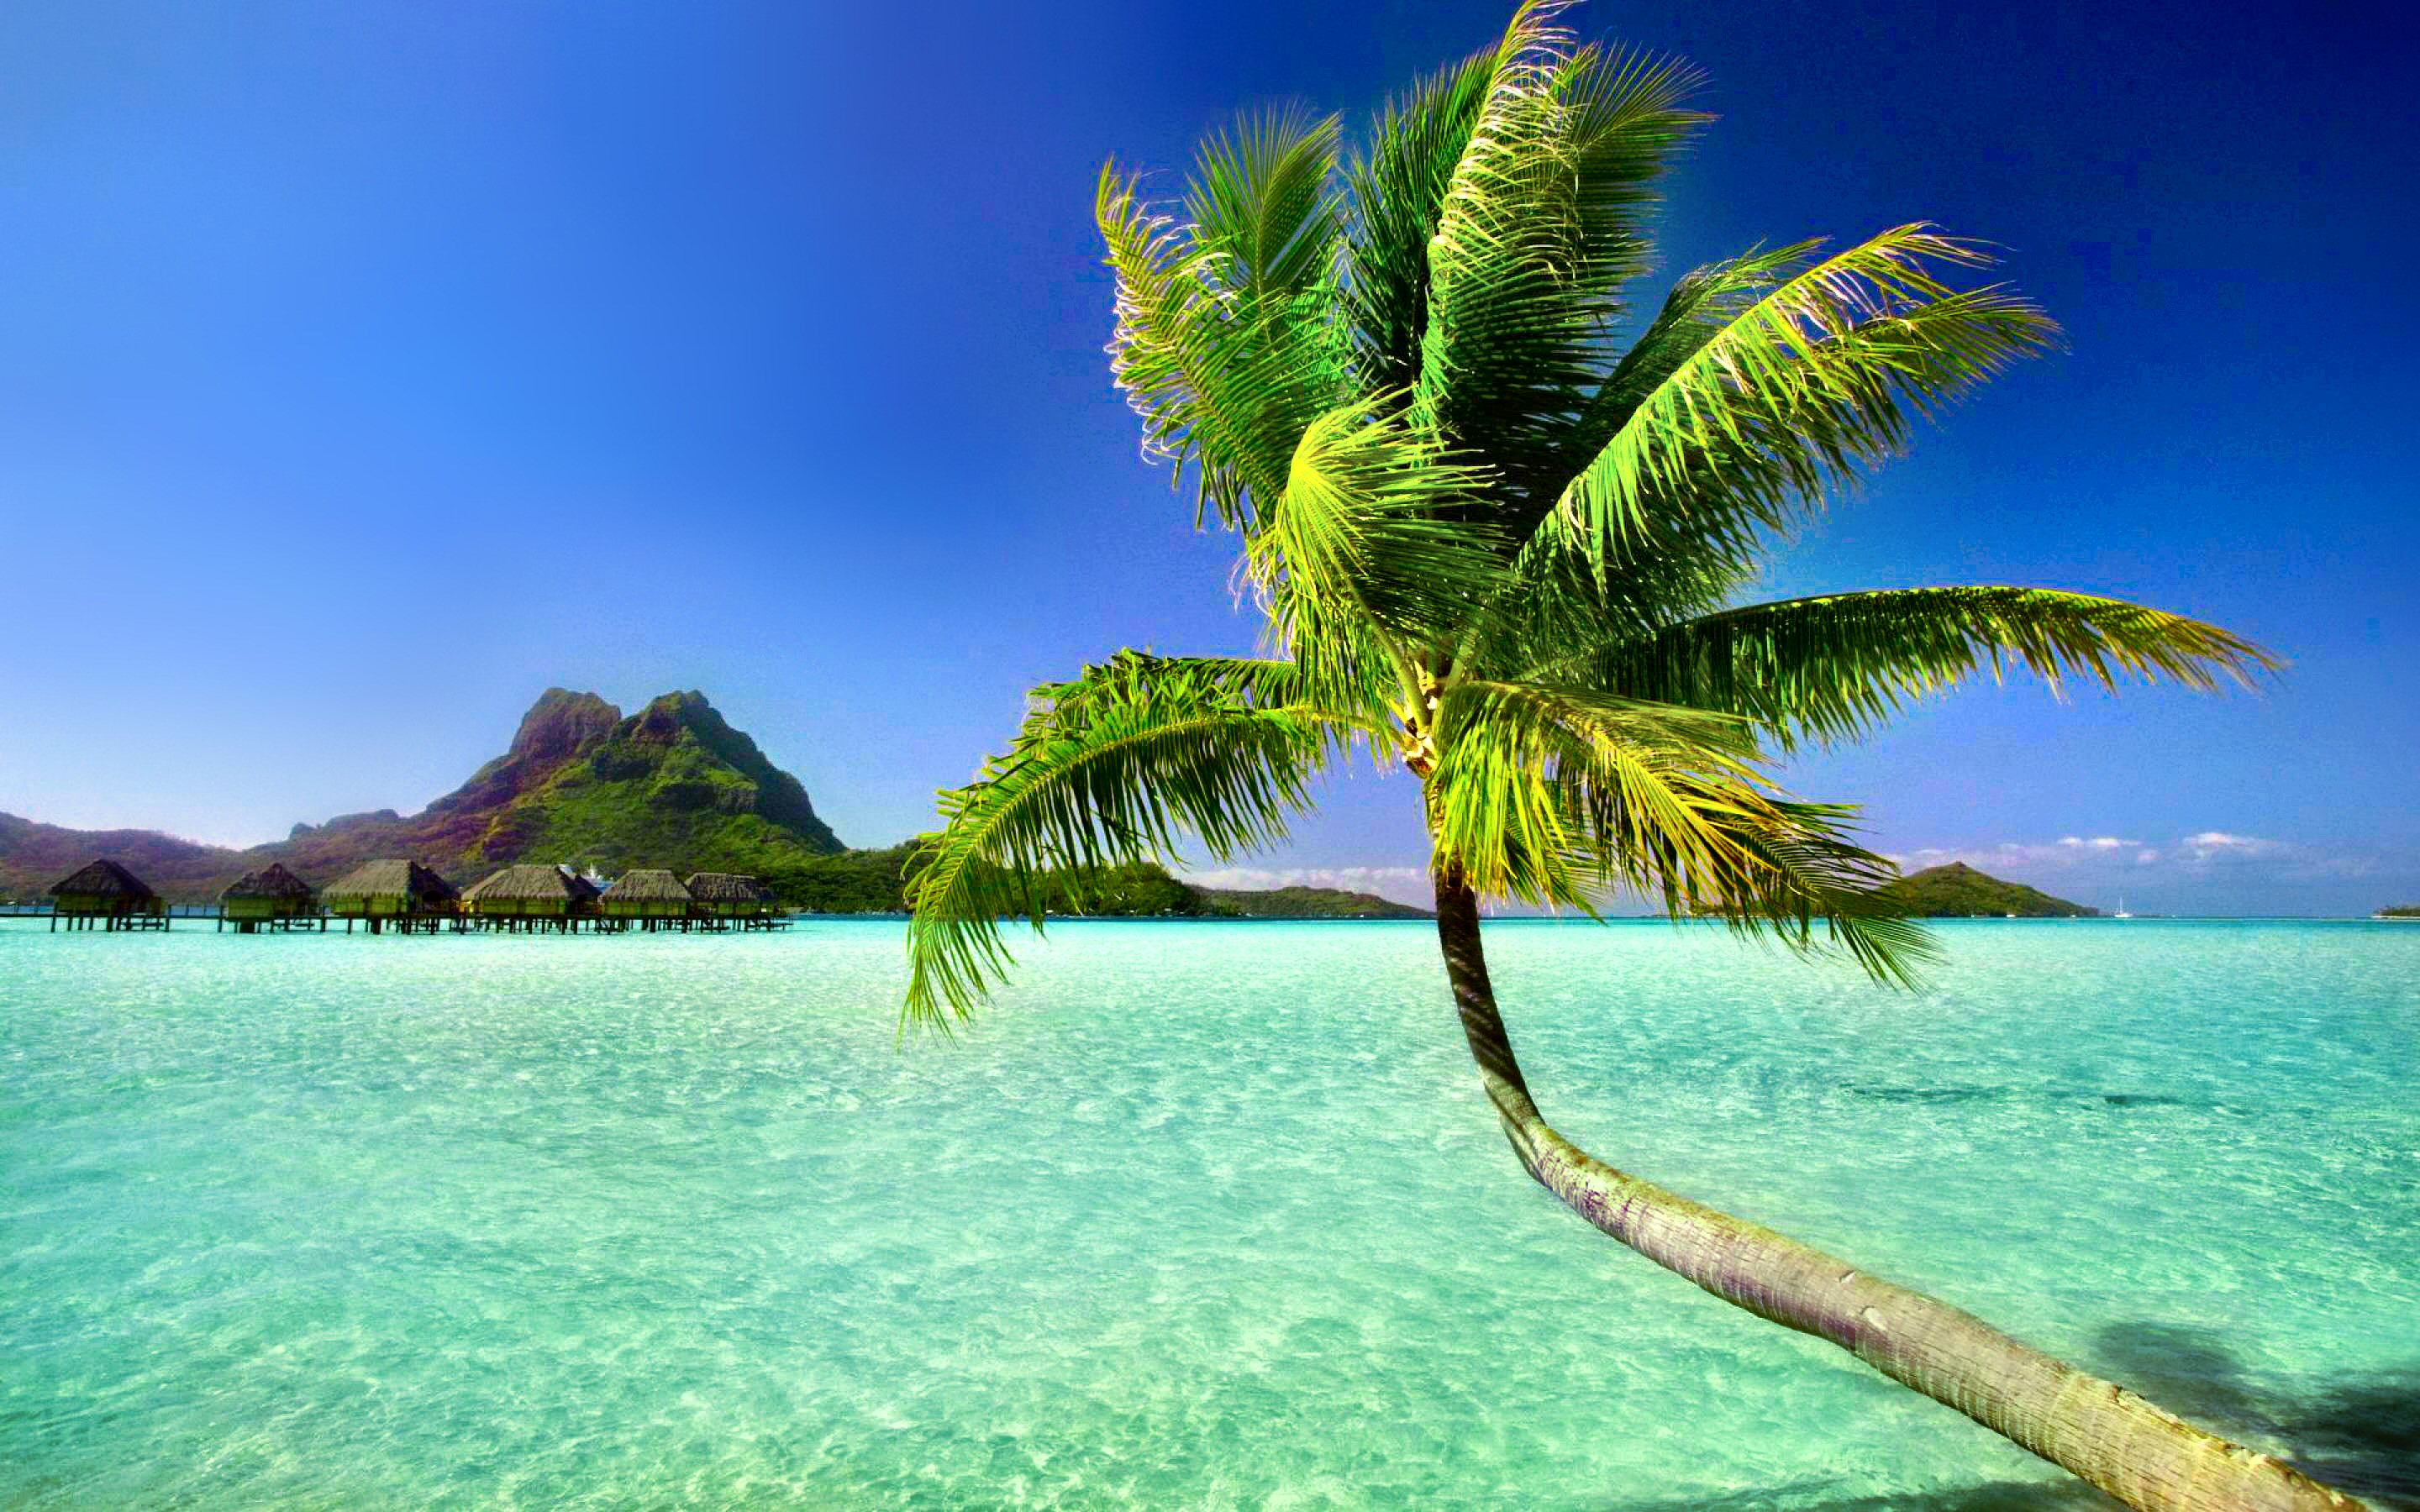 Paradise Beach Wallpaper 1366x768 Palm Trees 25 HD Screensavers